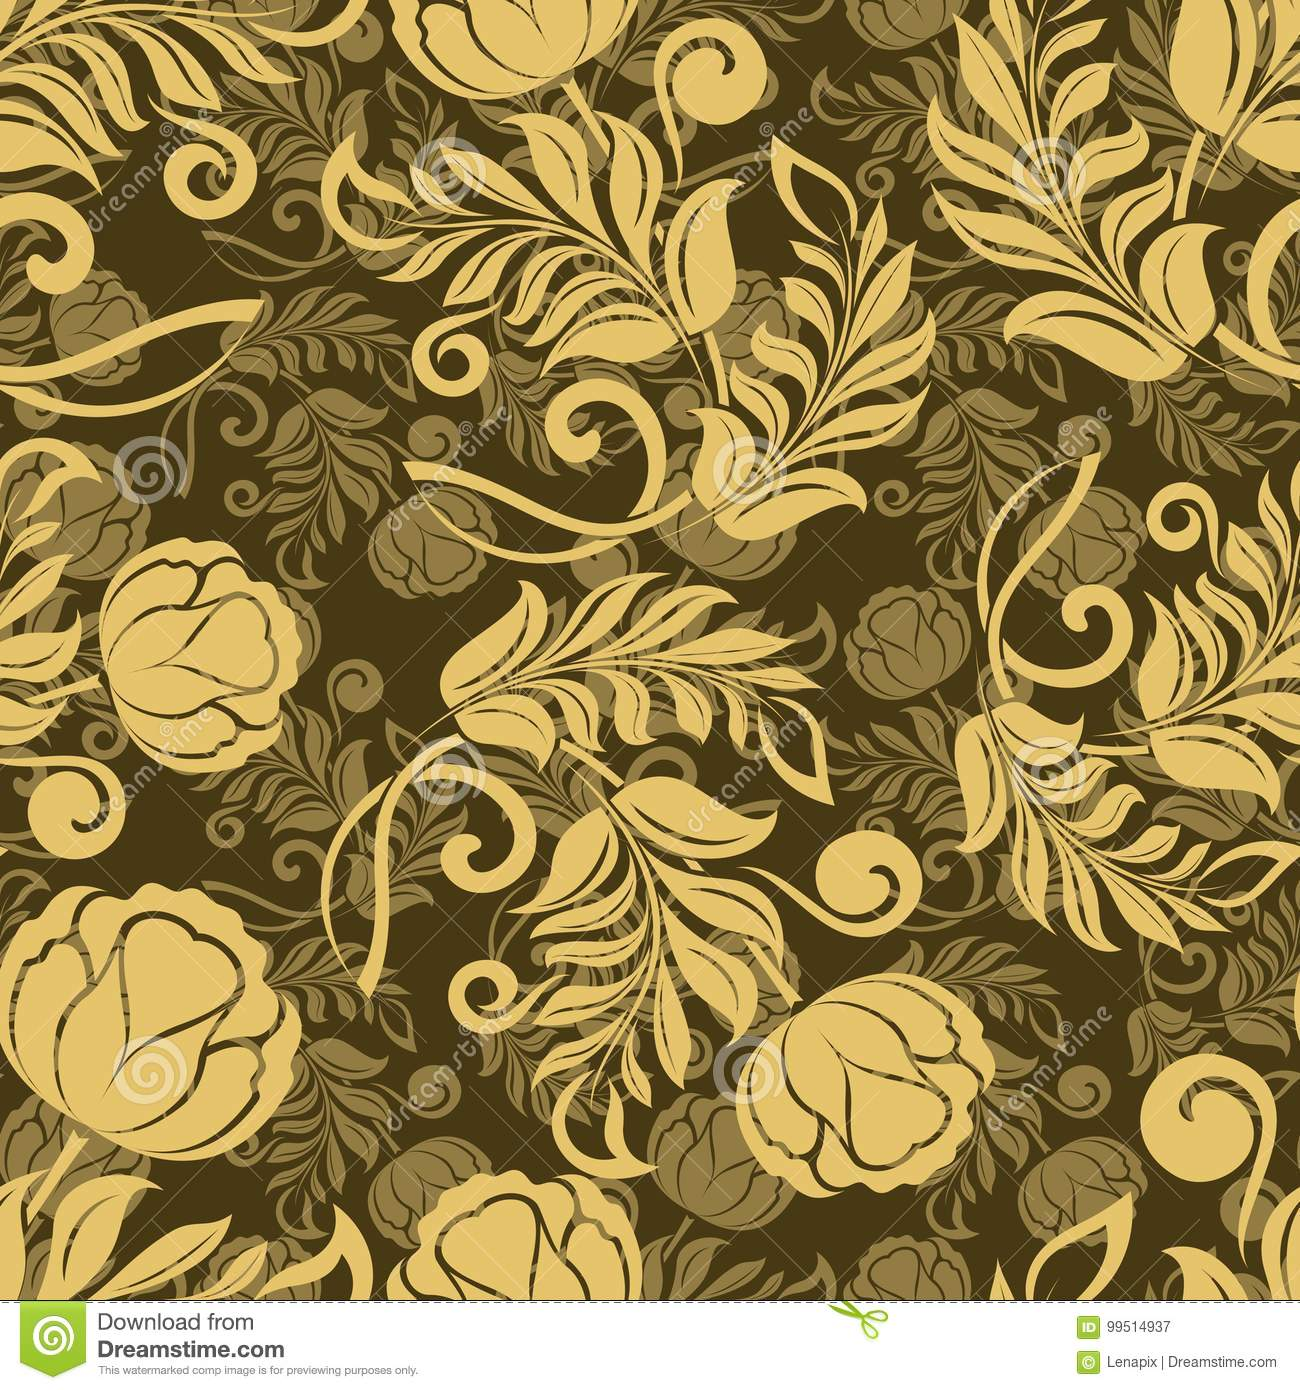 Seamless Flower Wallpaper Stock Vector Illustration Of Repeated